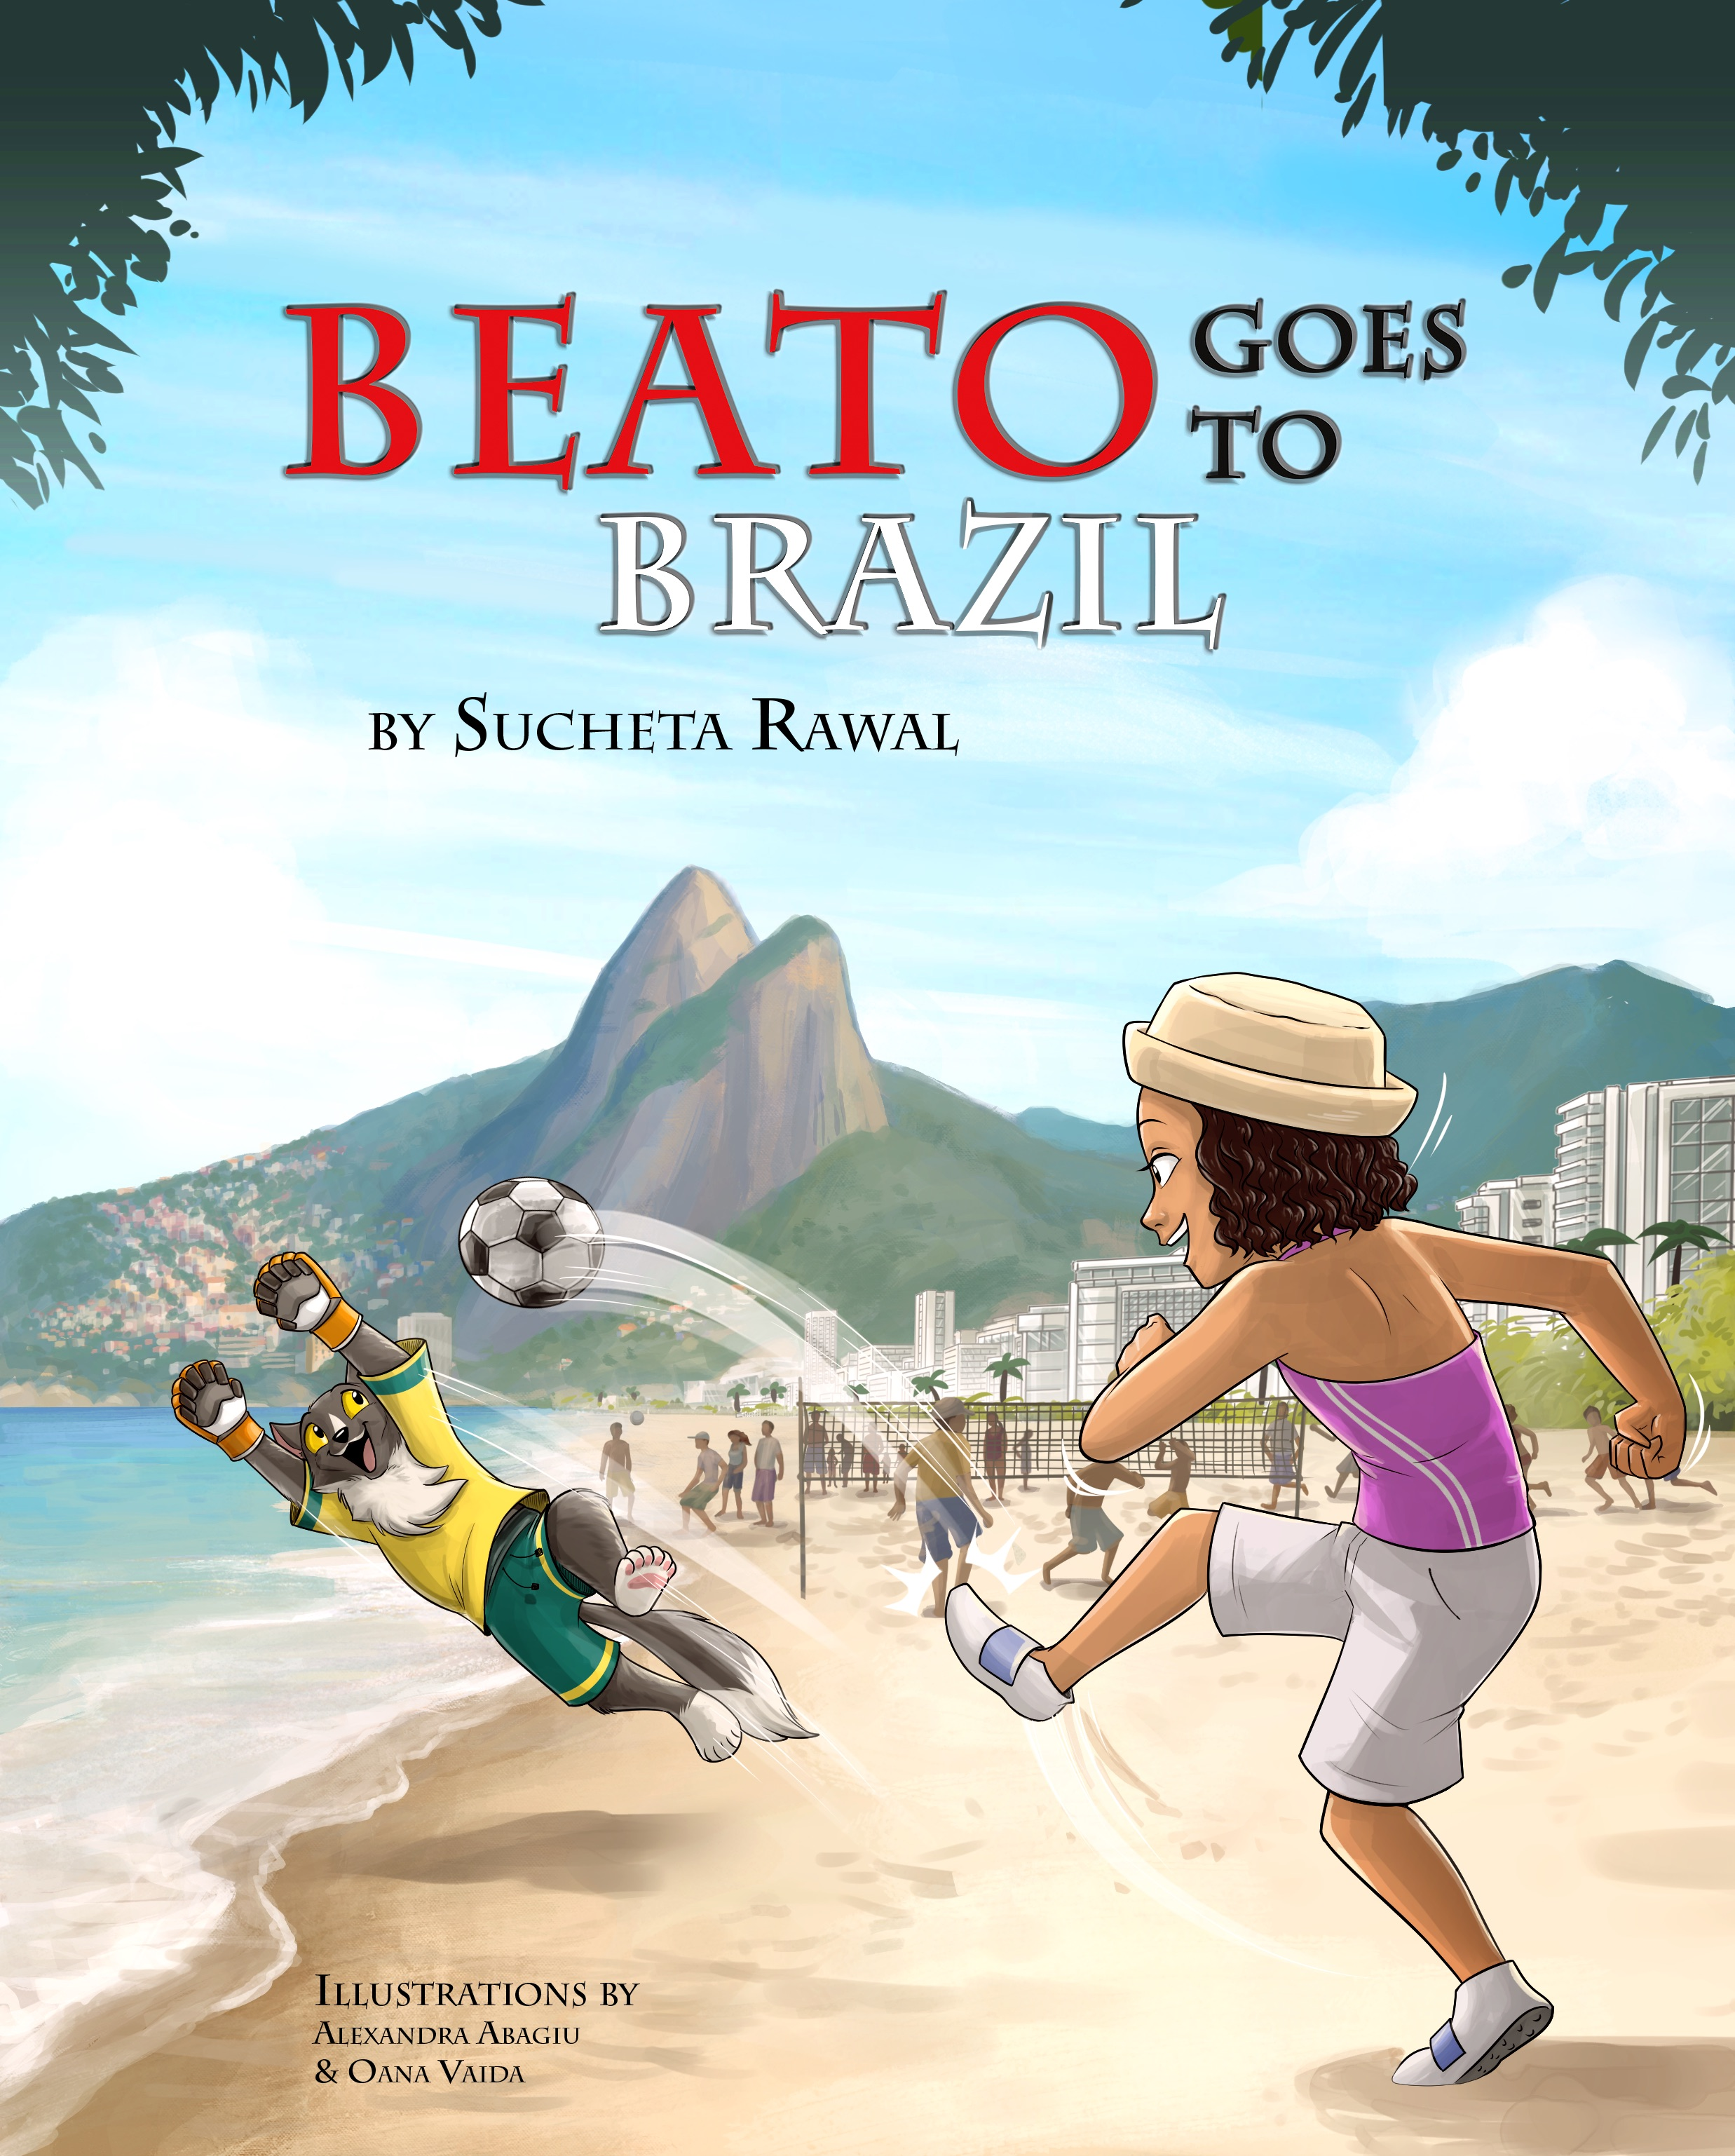 Beato Goes To Brazil Book Launch Party at the Brazilian Consulate